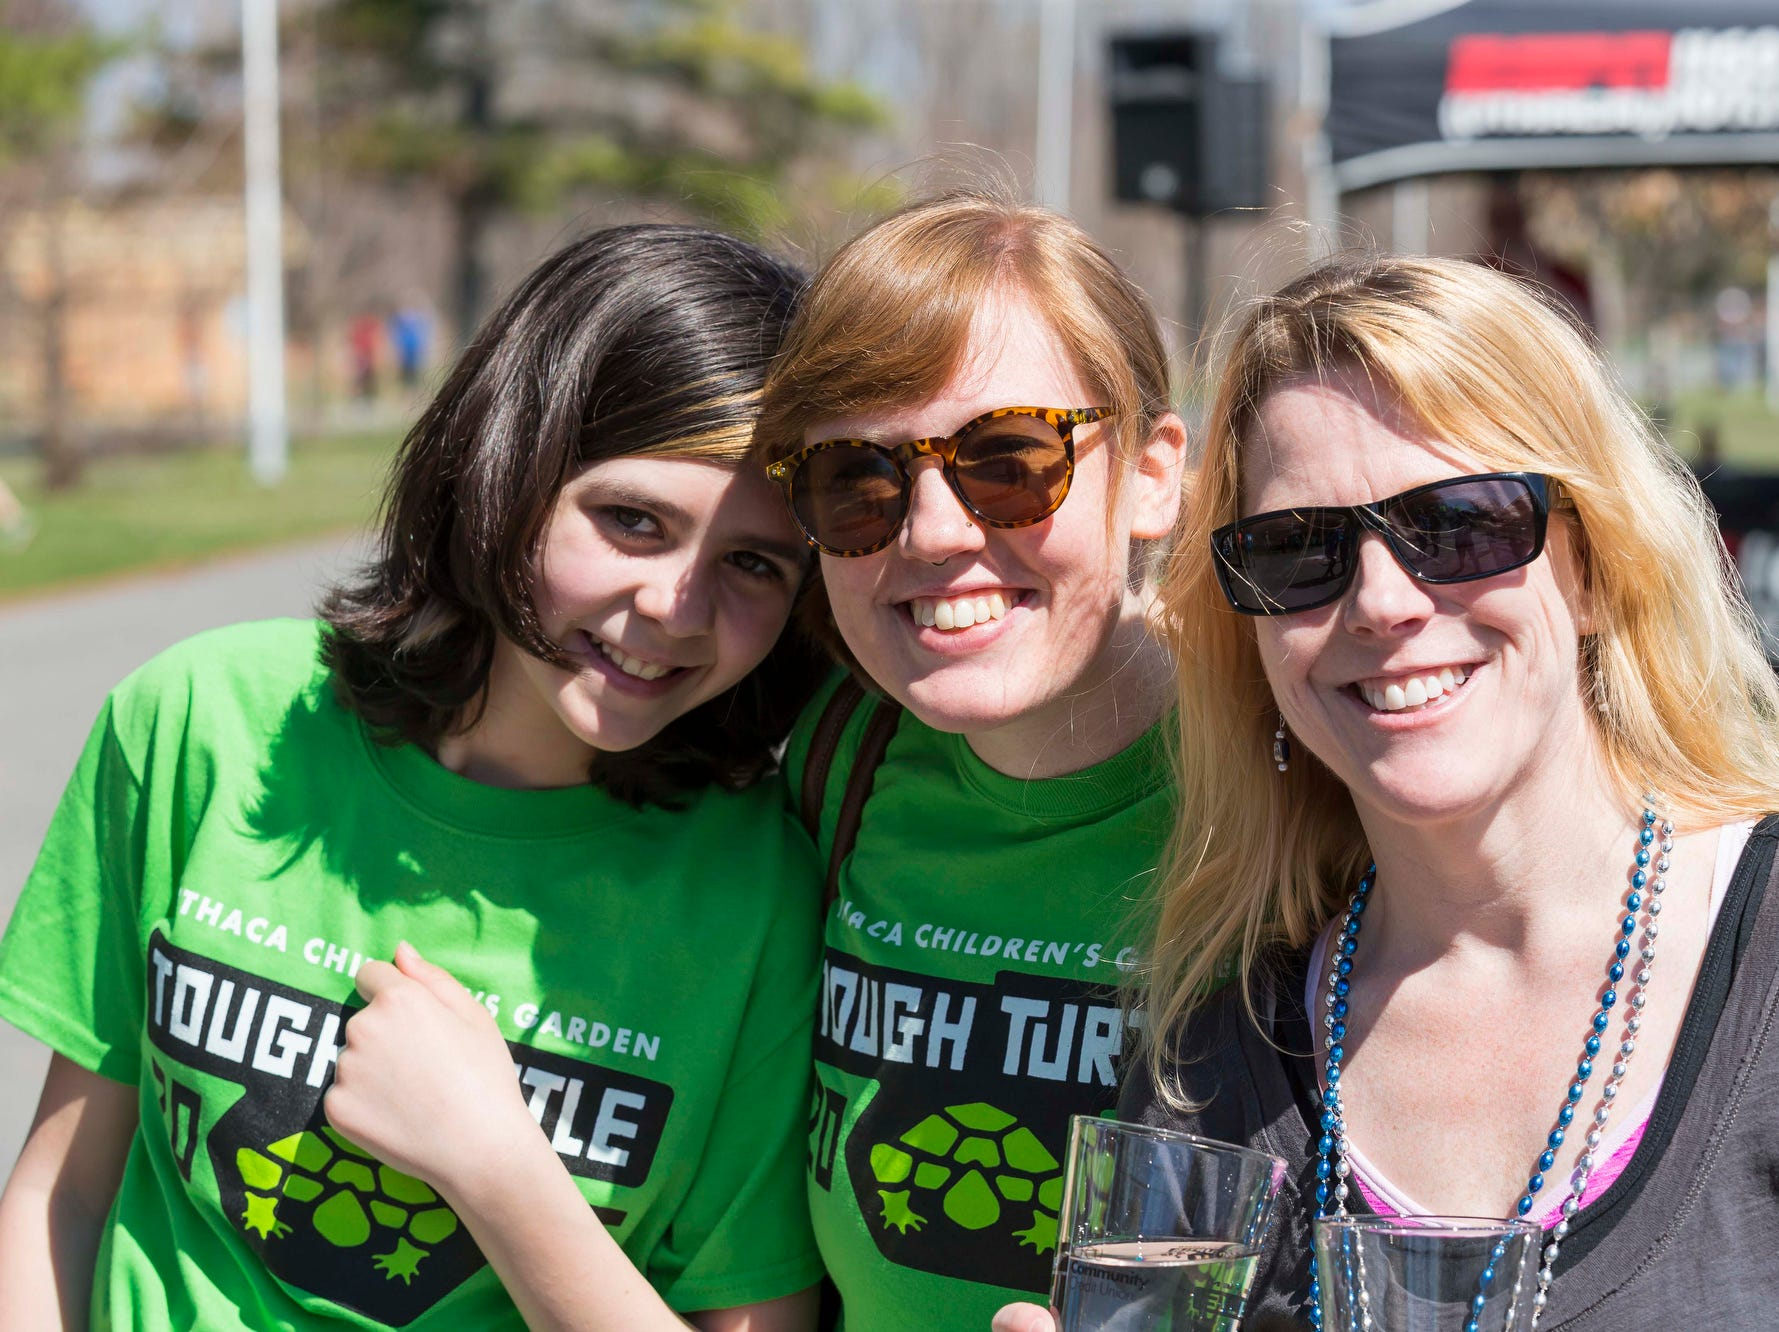 2016: Participants in the 2016 Tough Turtle 5K, a fundraiser for the Ithaca ChildrenÕs Garden.